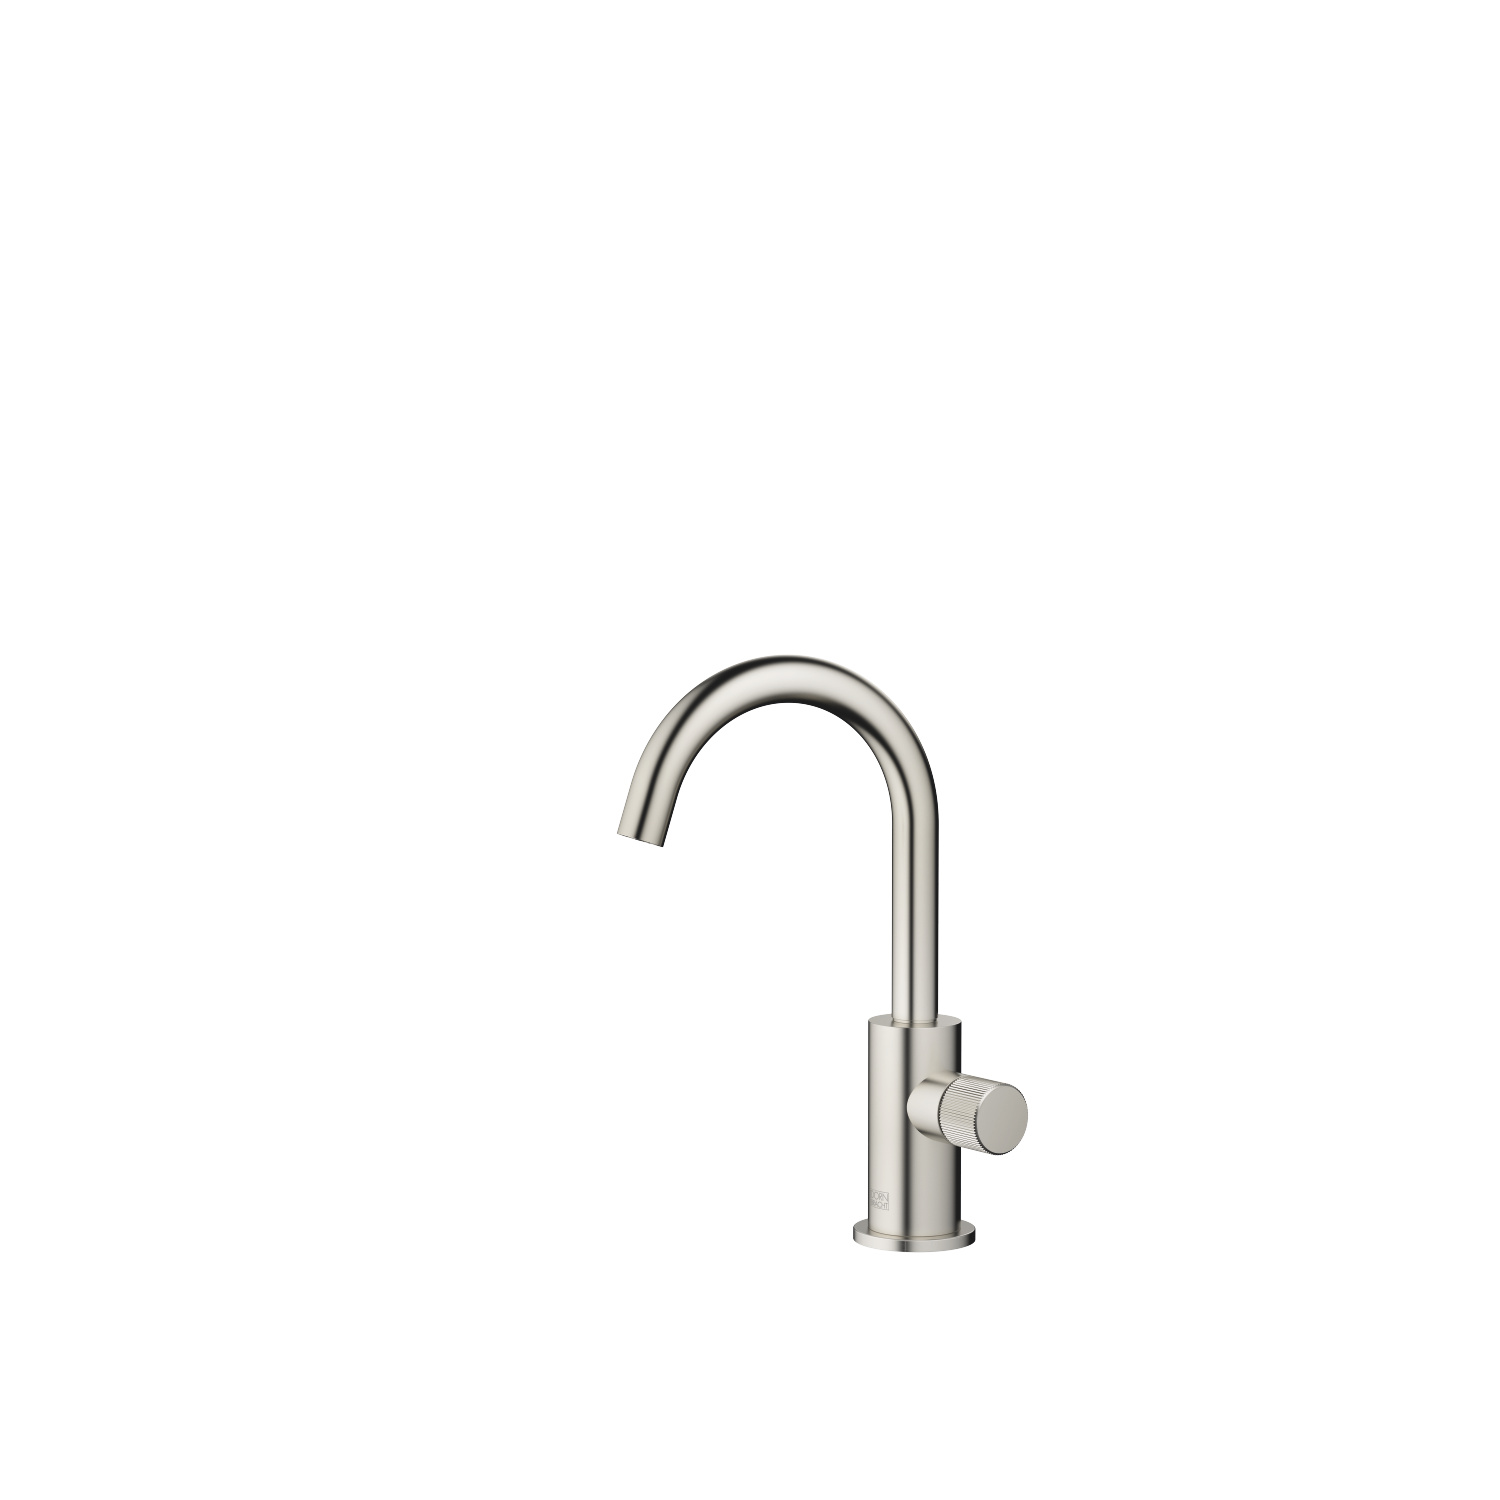 Pillar tap cold water - platinum matt